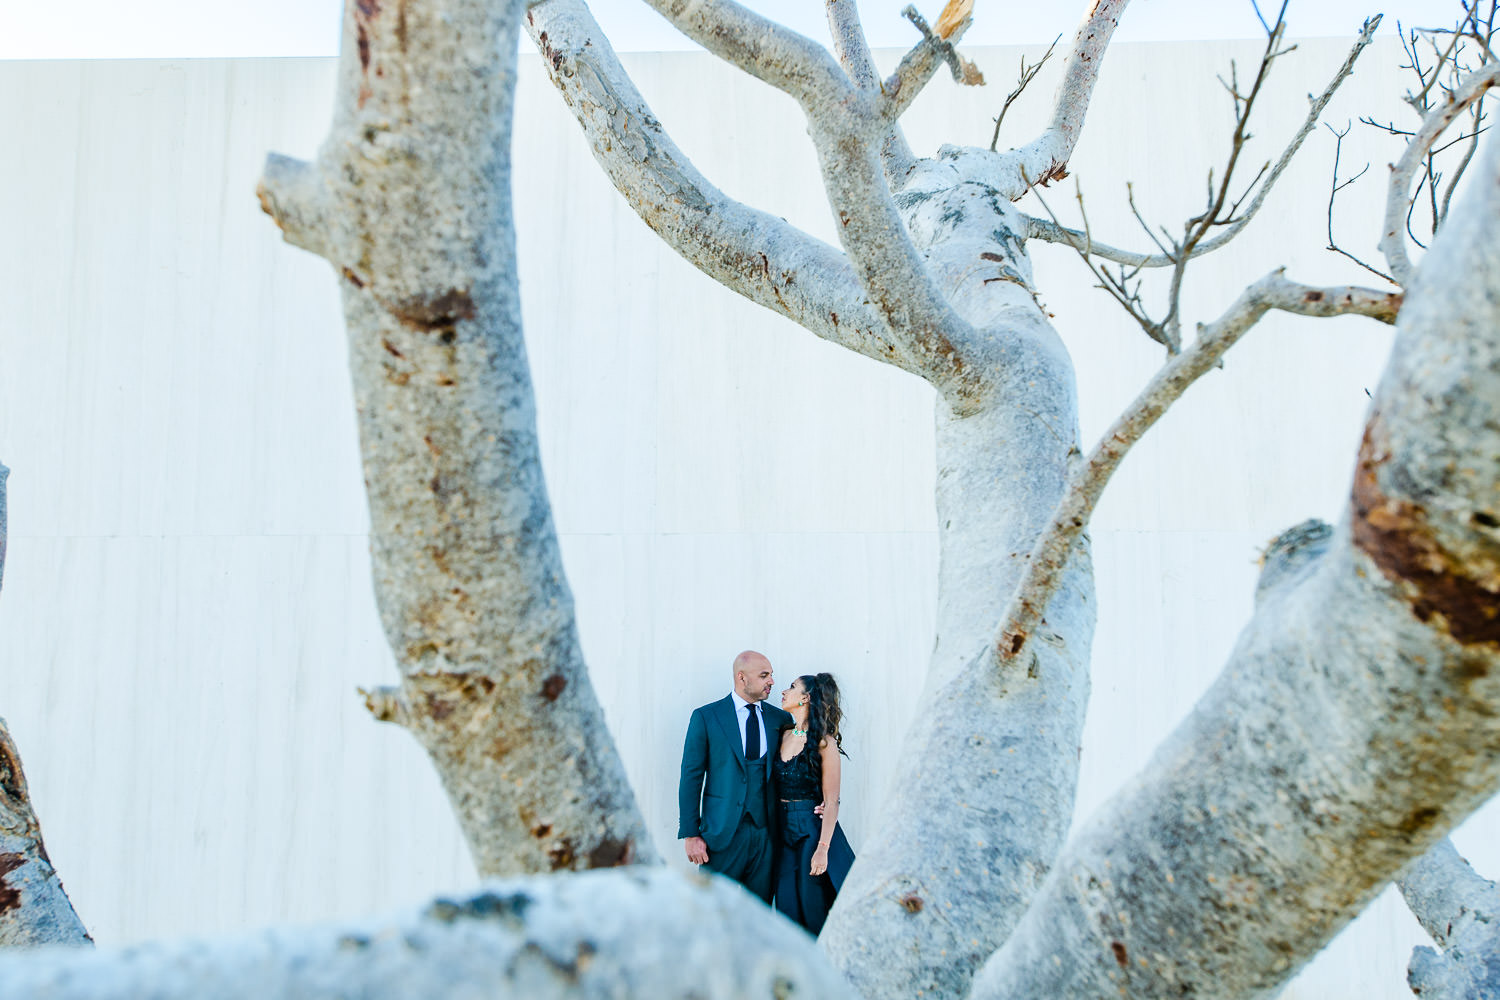 Wedding-Photography-Nobu-Los-Cabos.JPG